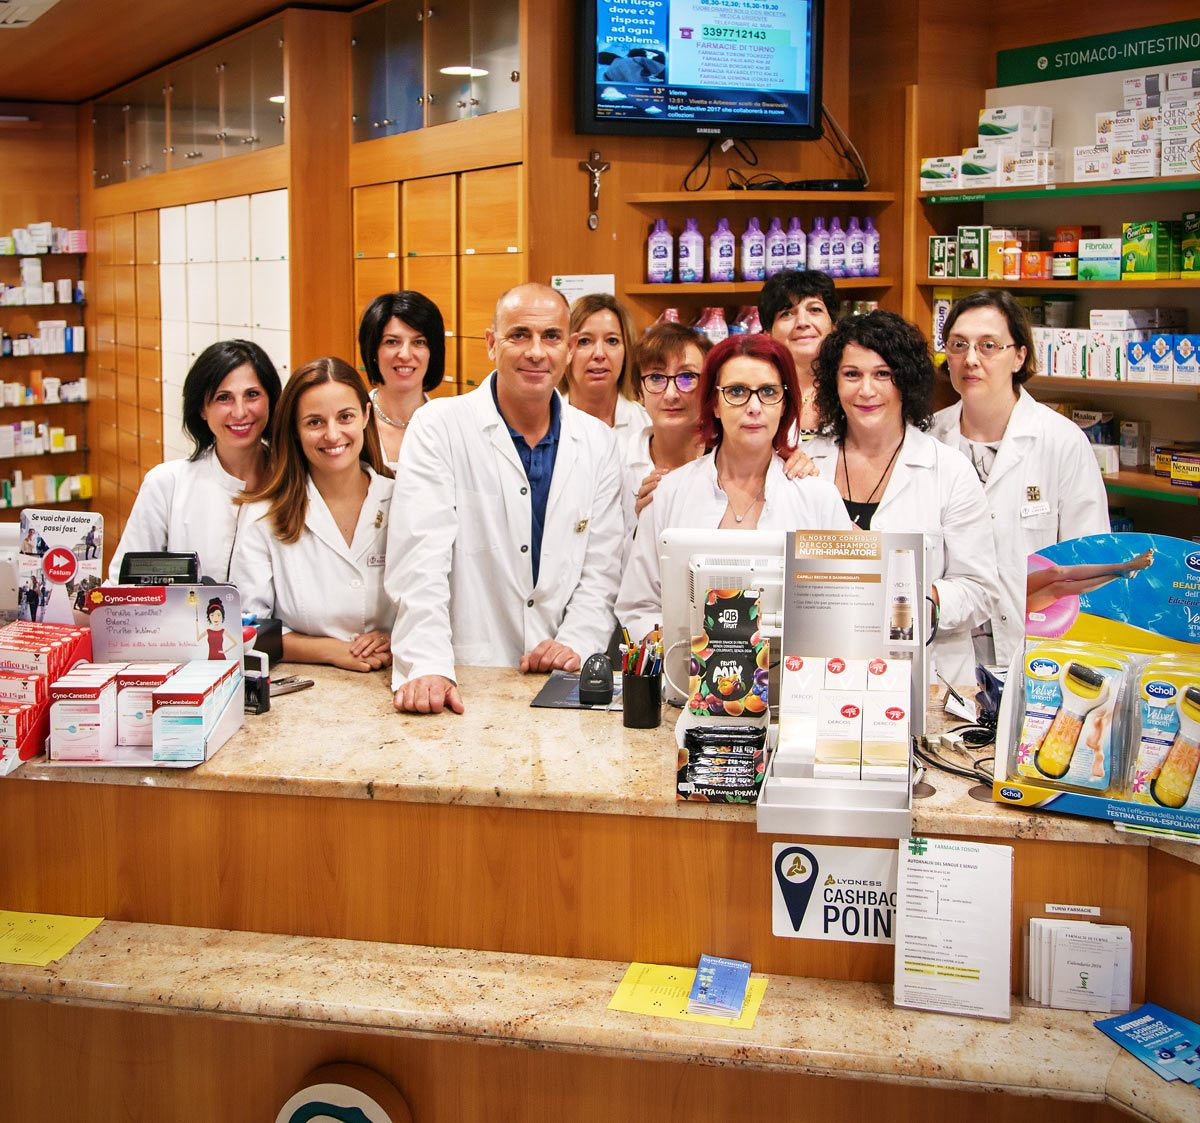 Team Farmacia Tosoni